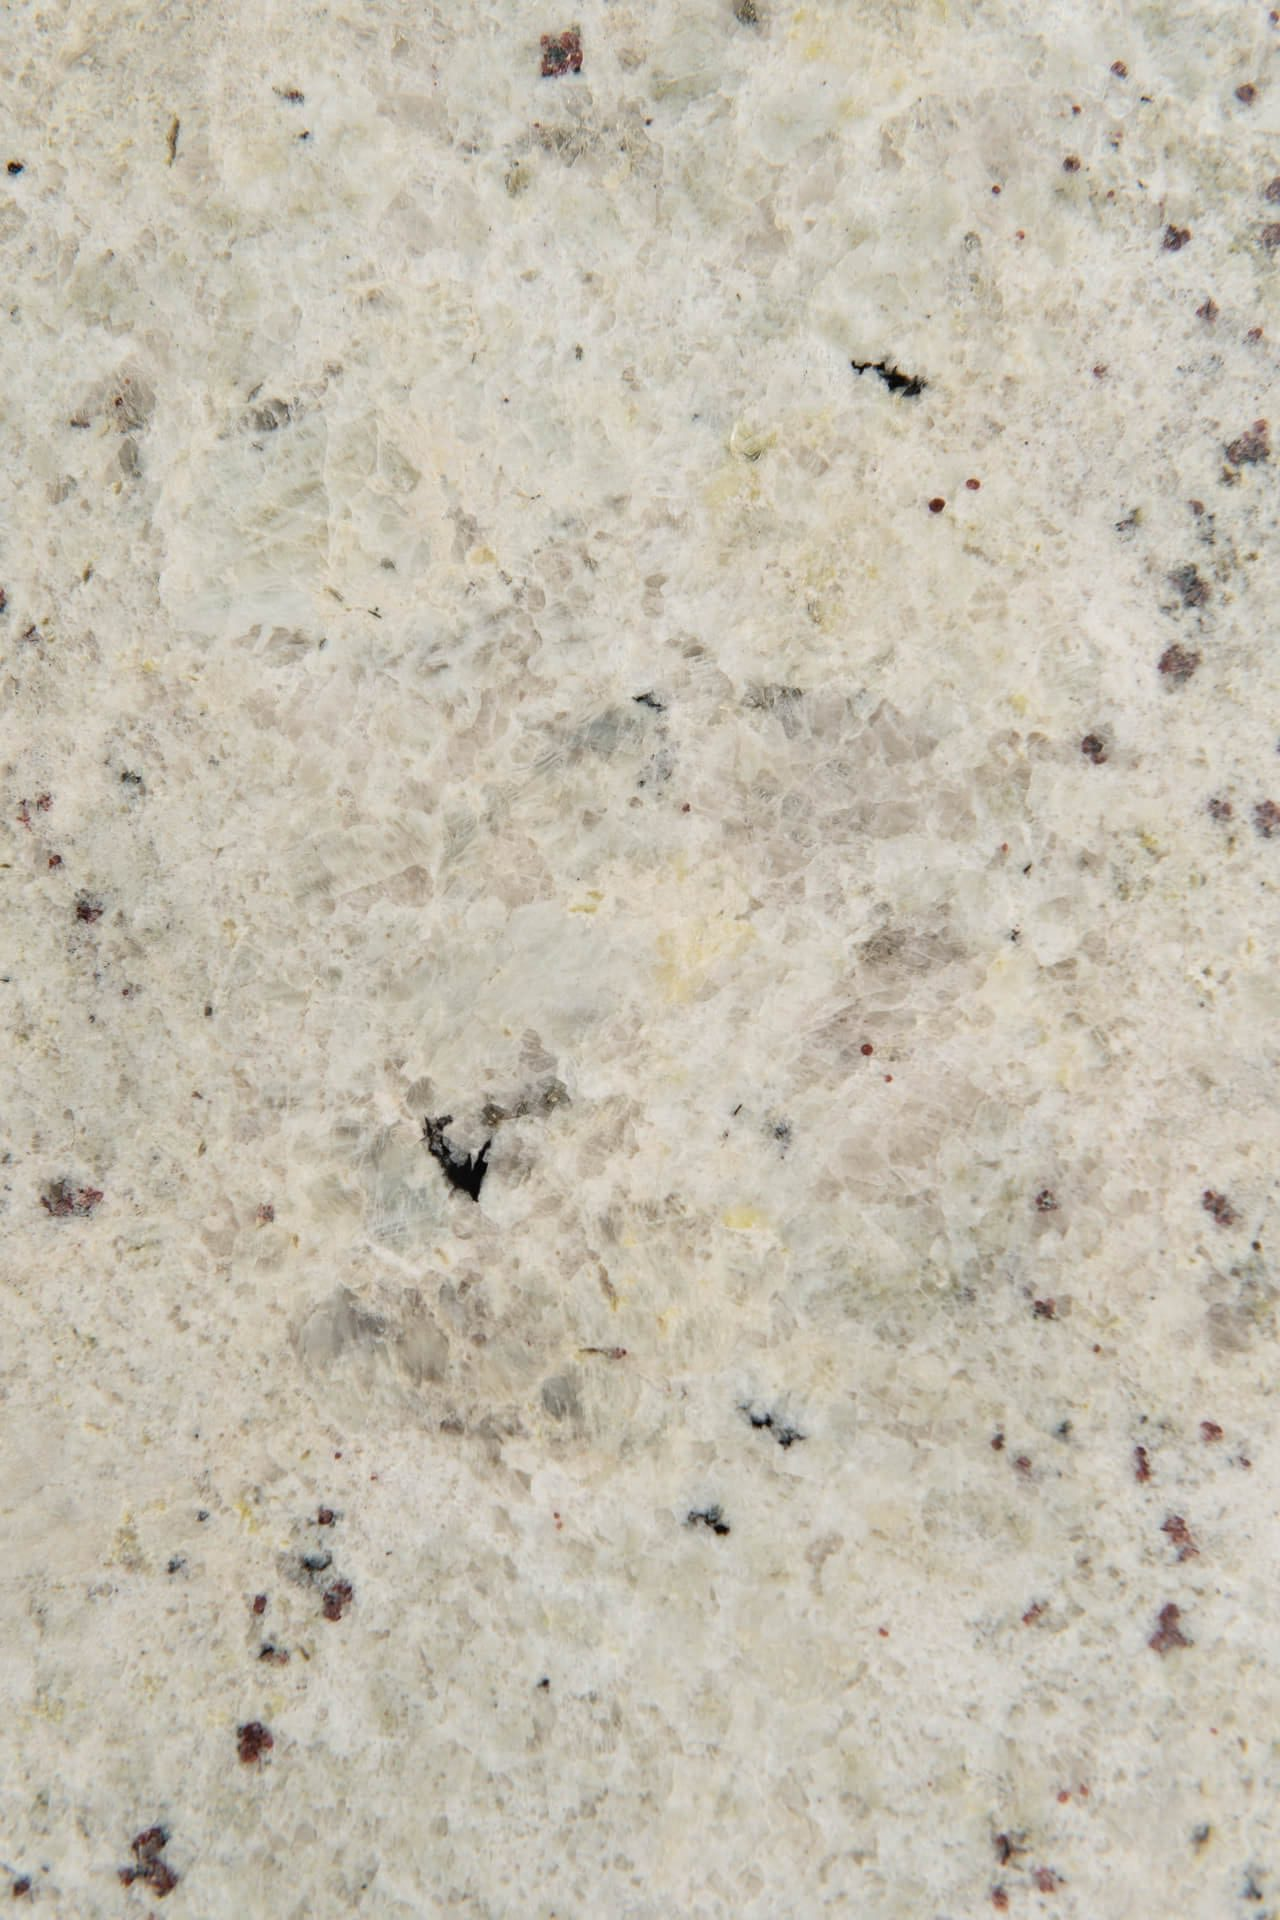 colonial white 3 cu countertop - by Magnolia Countertops. A Countertop fabricator of Granite Countertops, Marble Countertops, and Quartz Countertops in Cookeville and Crossville TN.